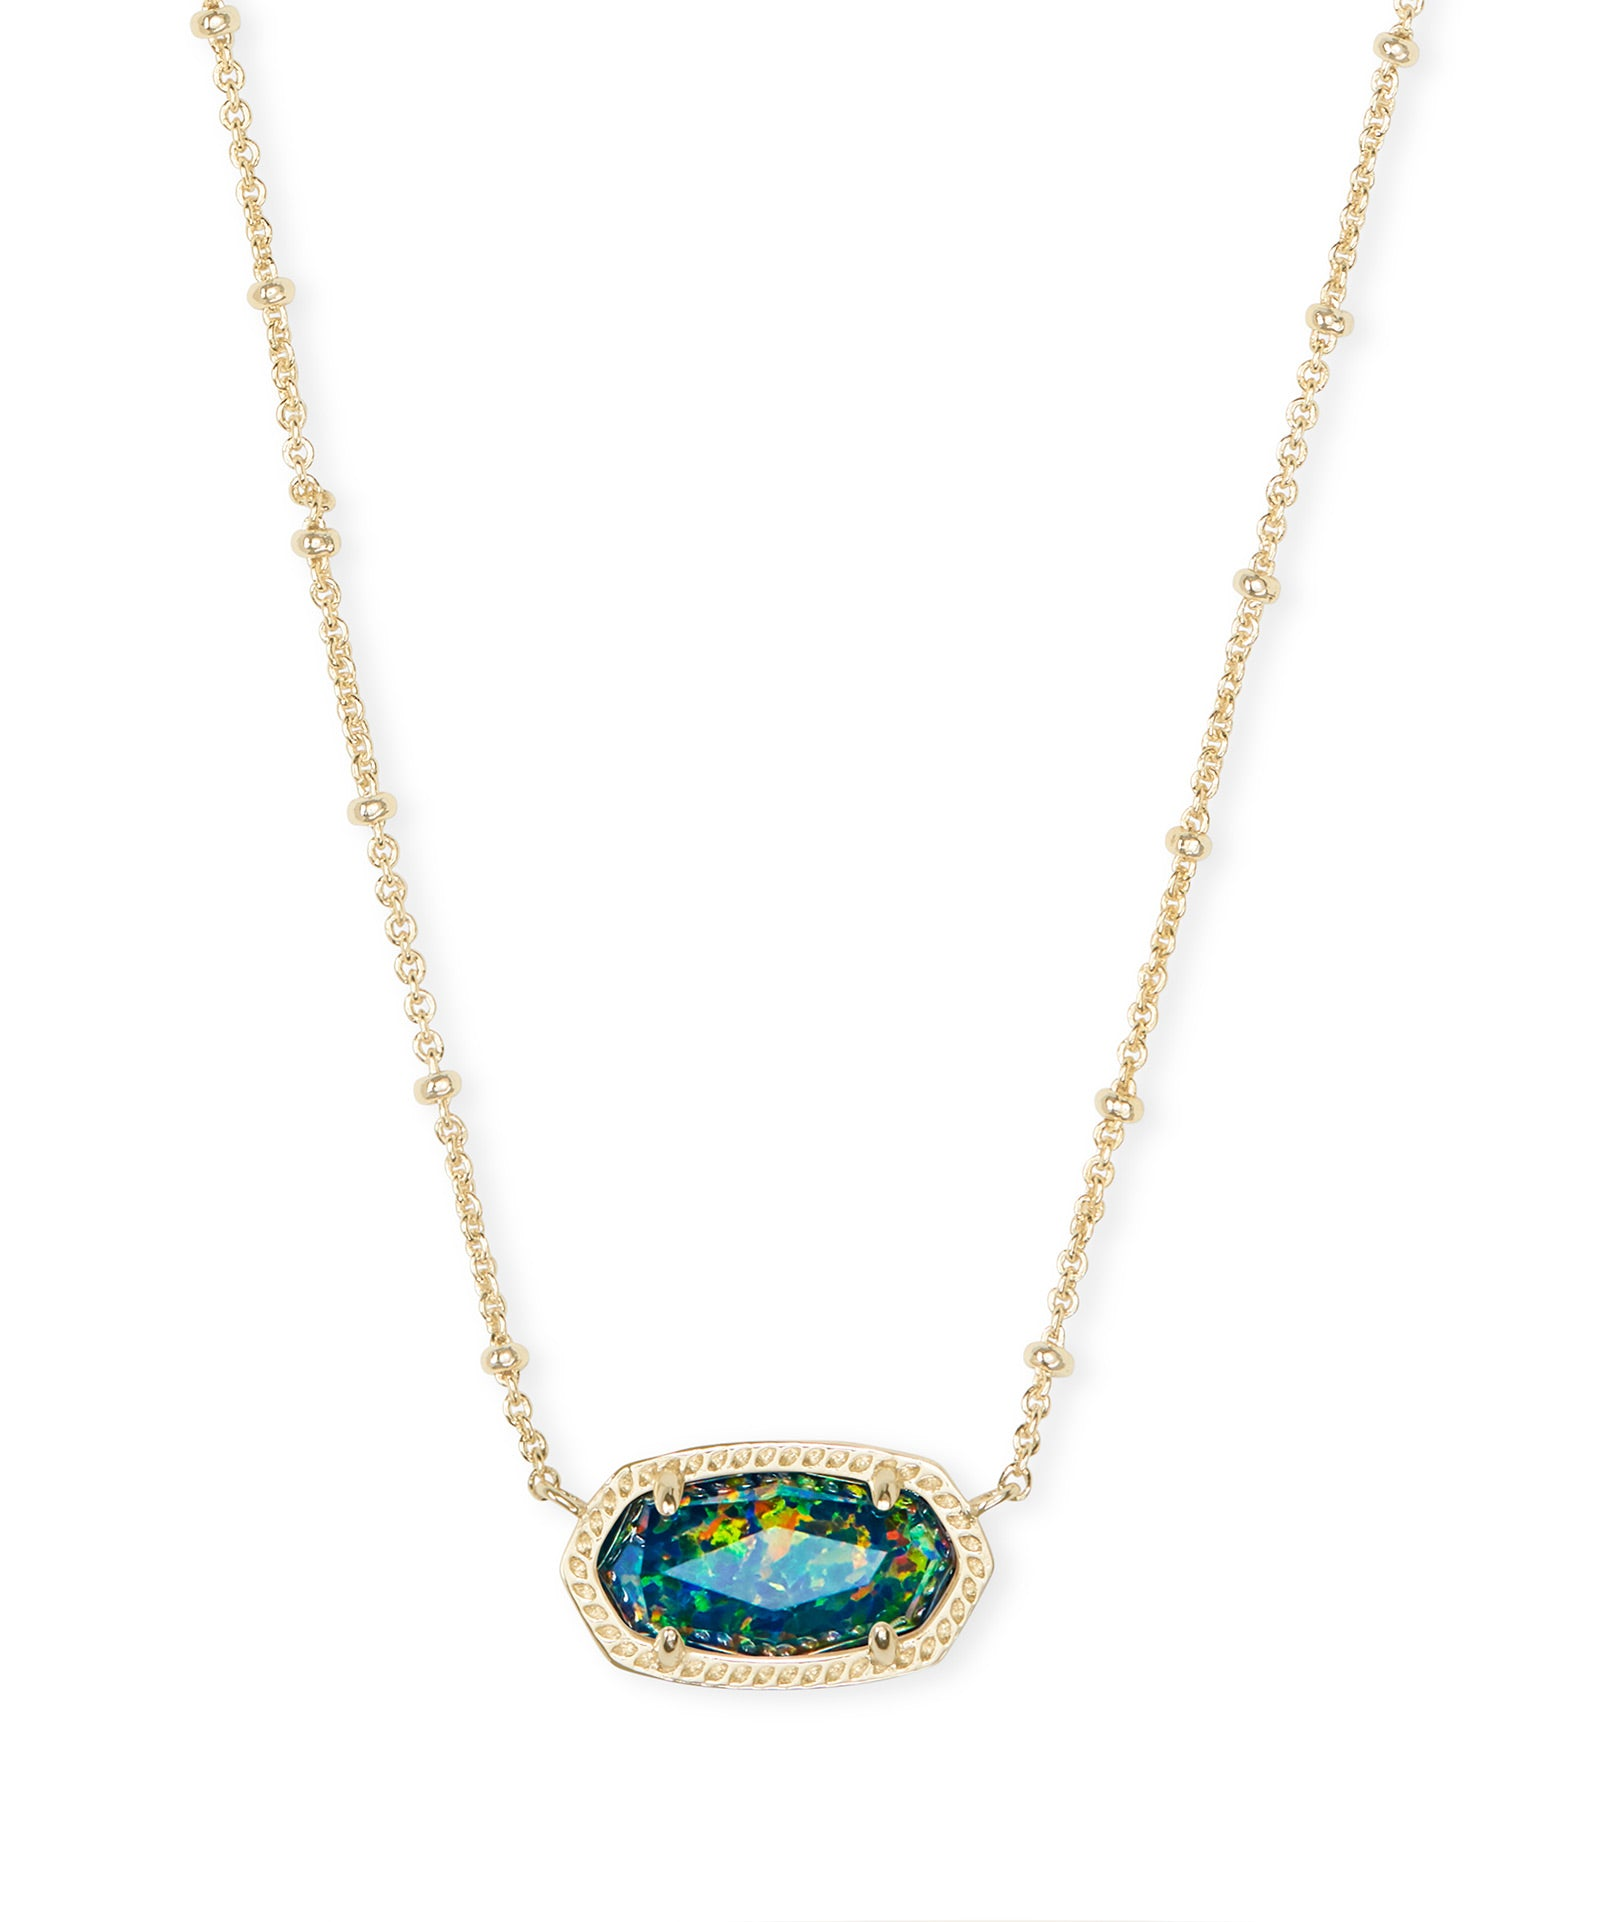 Kendra Scott Elisa Gold Satellite Pendant Necklace In Midnight Kyocera Opal Illusion